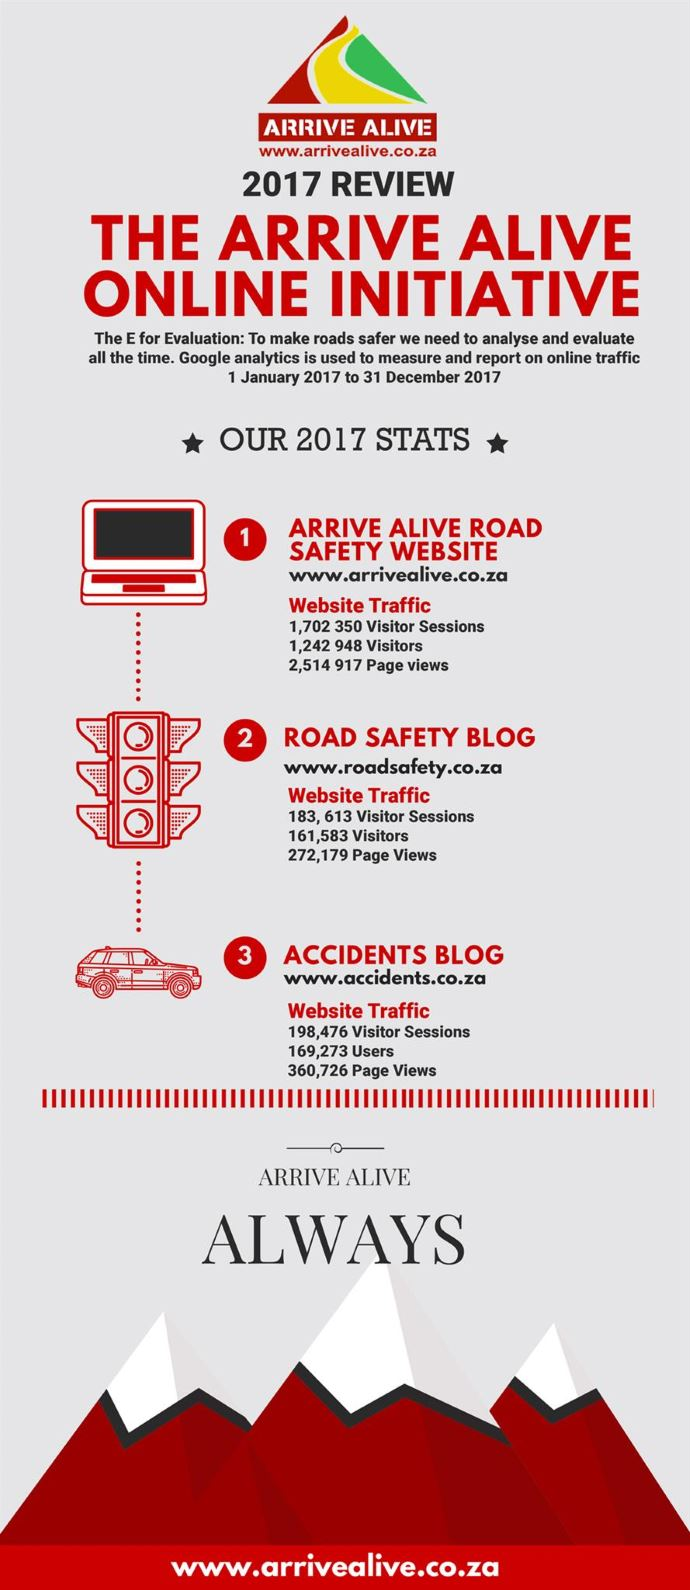 The Arrive Alive Online Initiative 2017 review